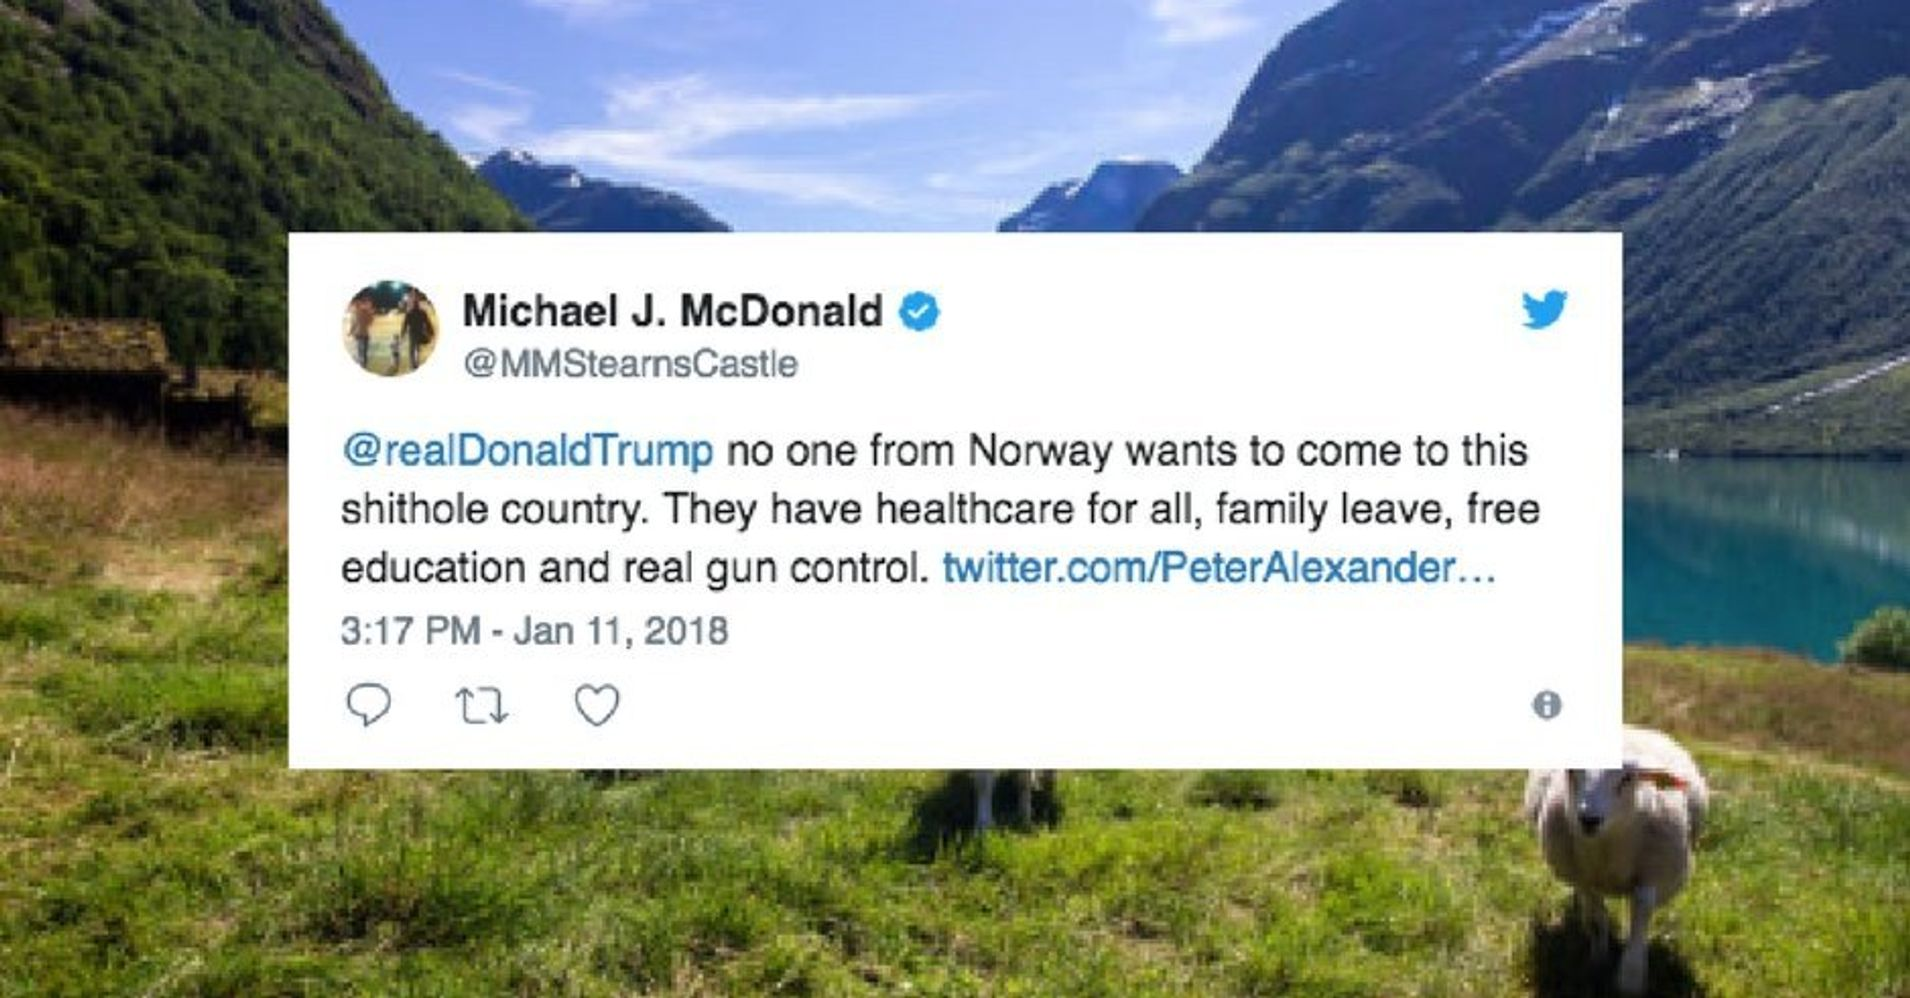 People On Twitter Tell Trump No One In Norway Wants To Come To His 'Shithole Country'